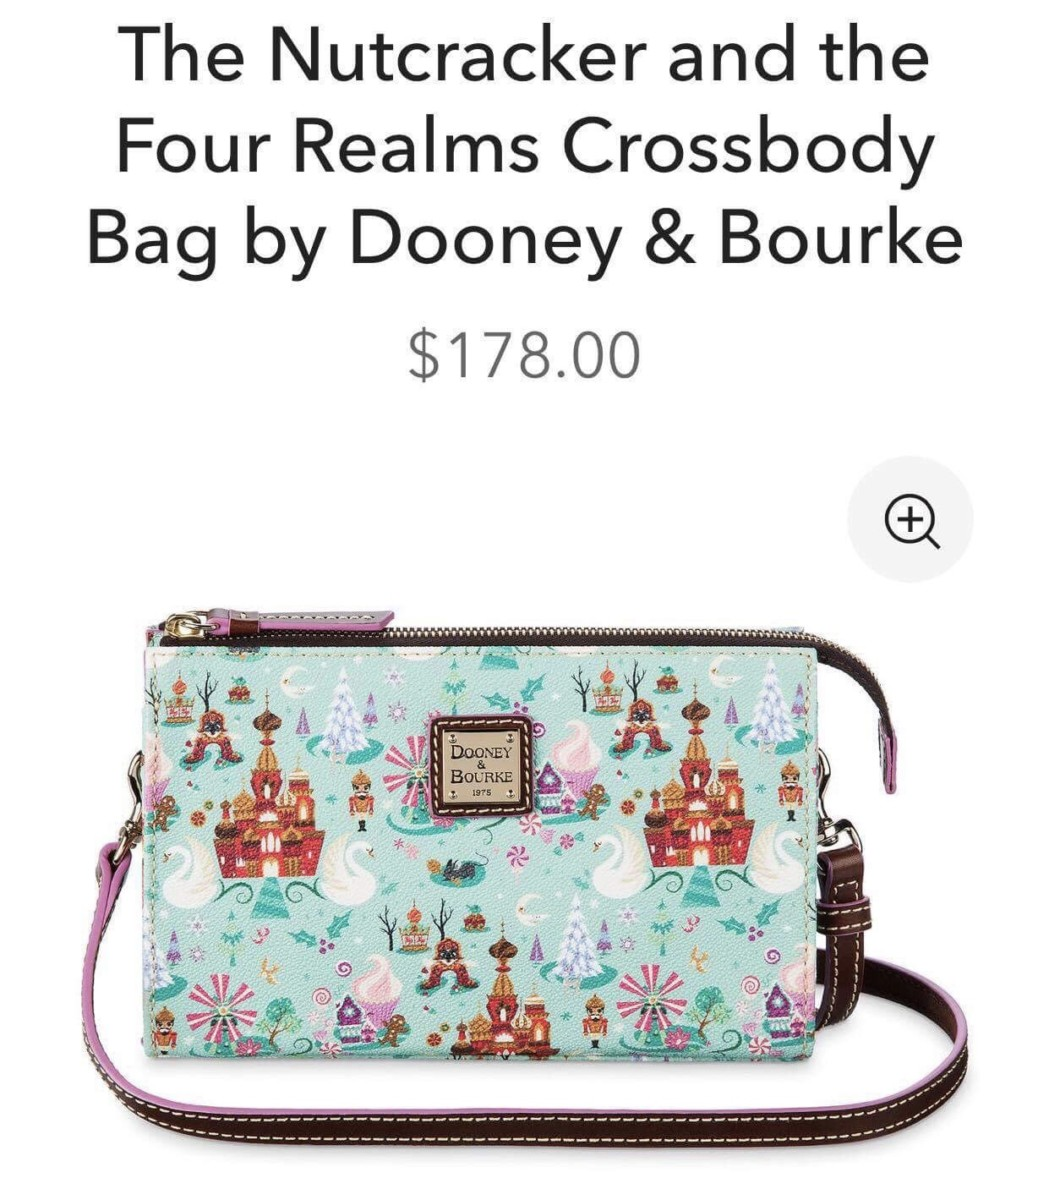 The Nutcracker and the Four Realms Dooney and Bourke Print! 3